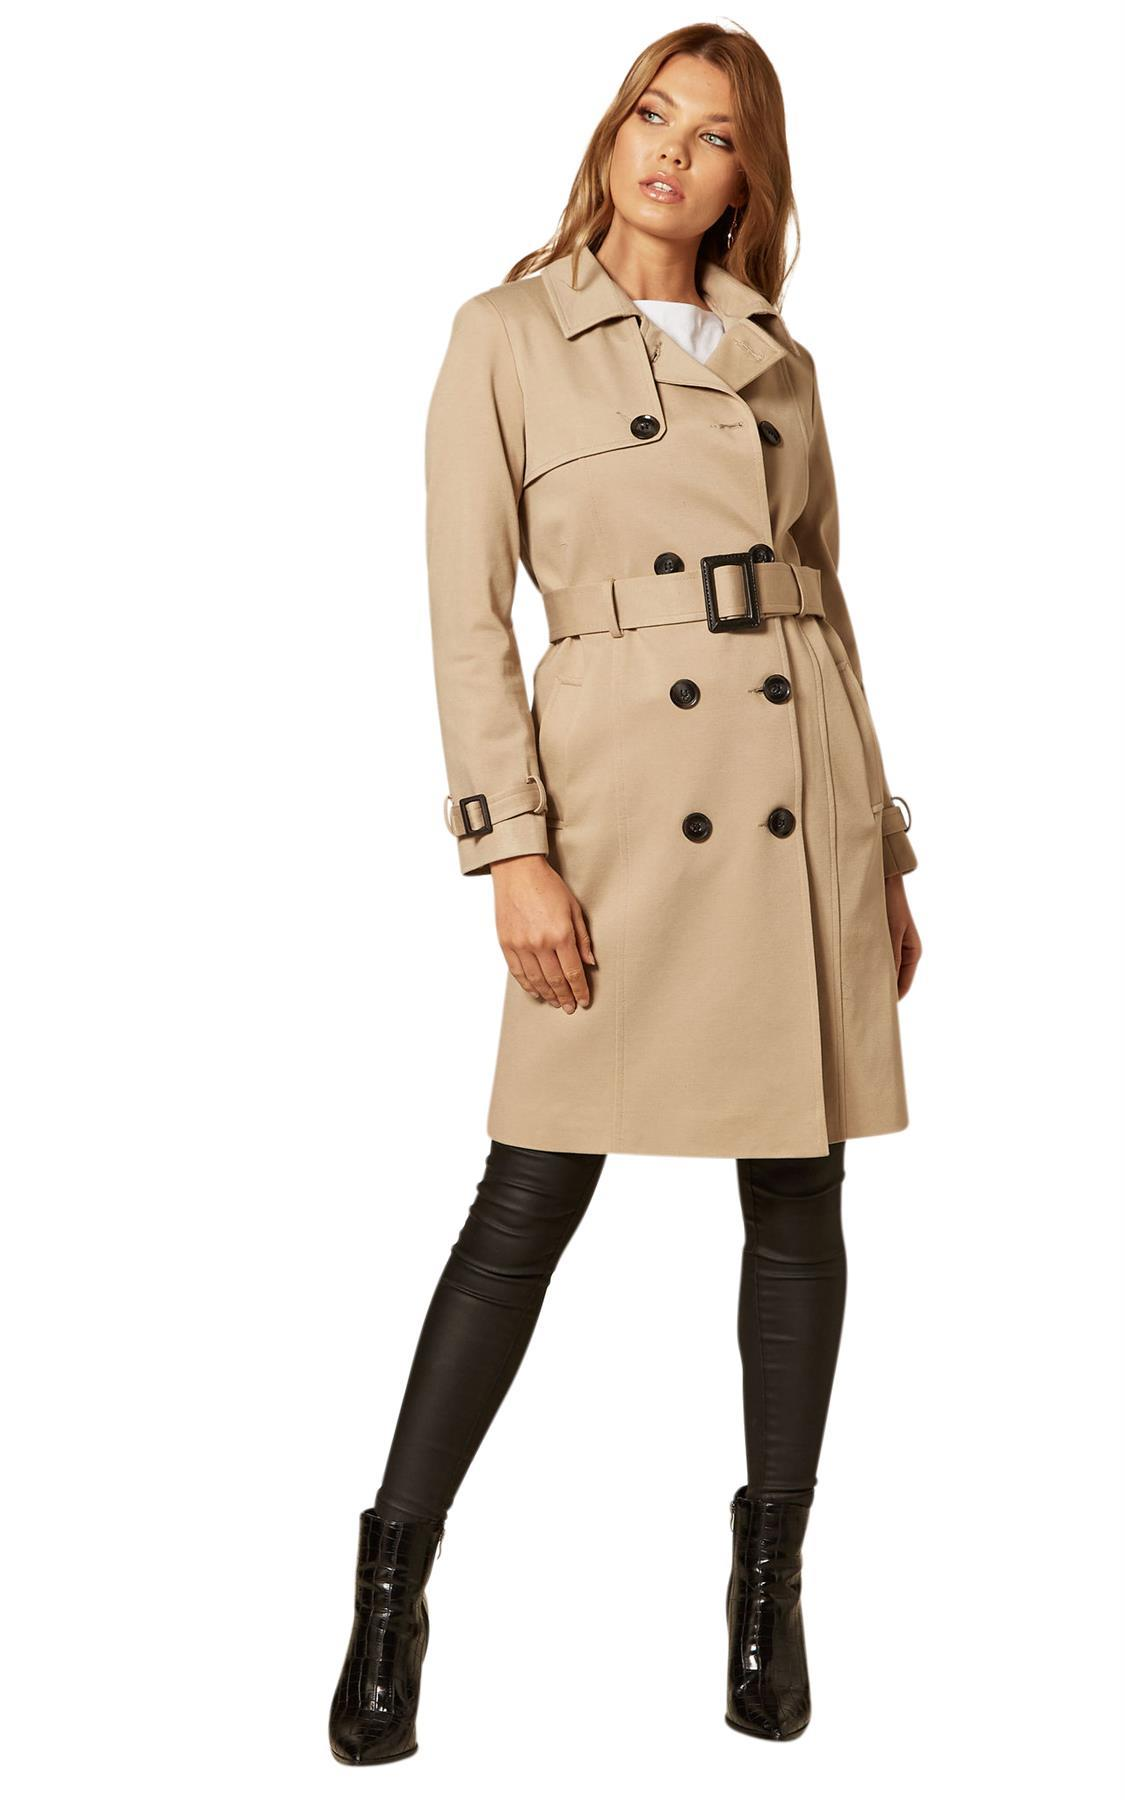 De La Creme - Women's Double Breasted Trench Coat